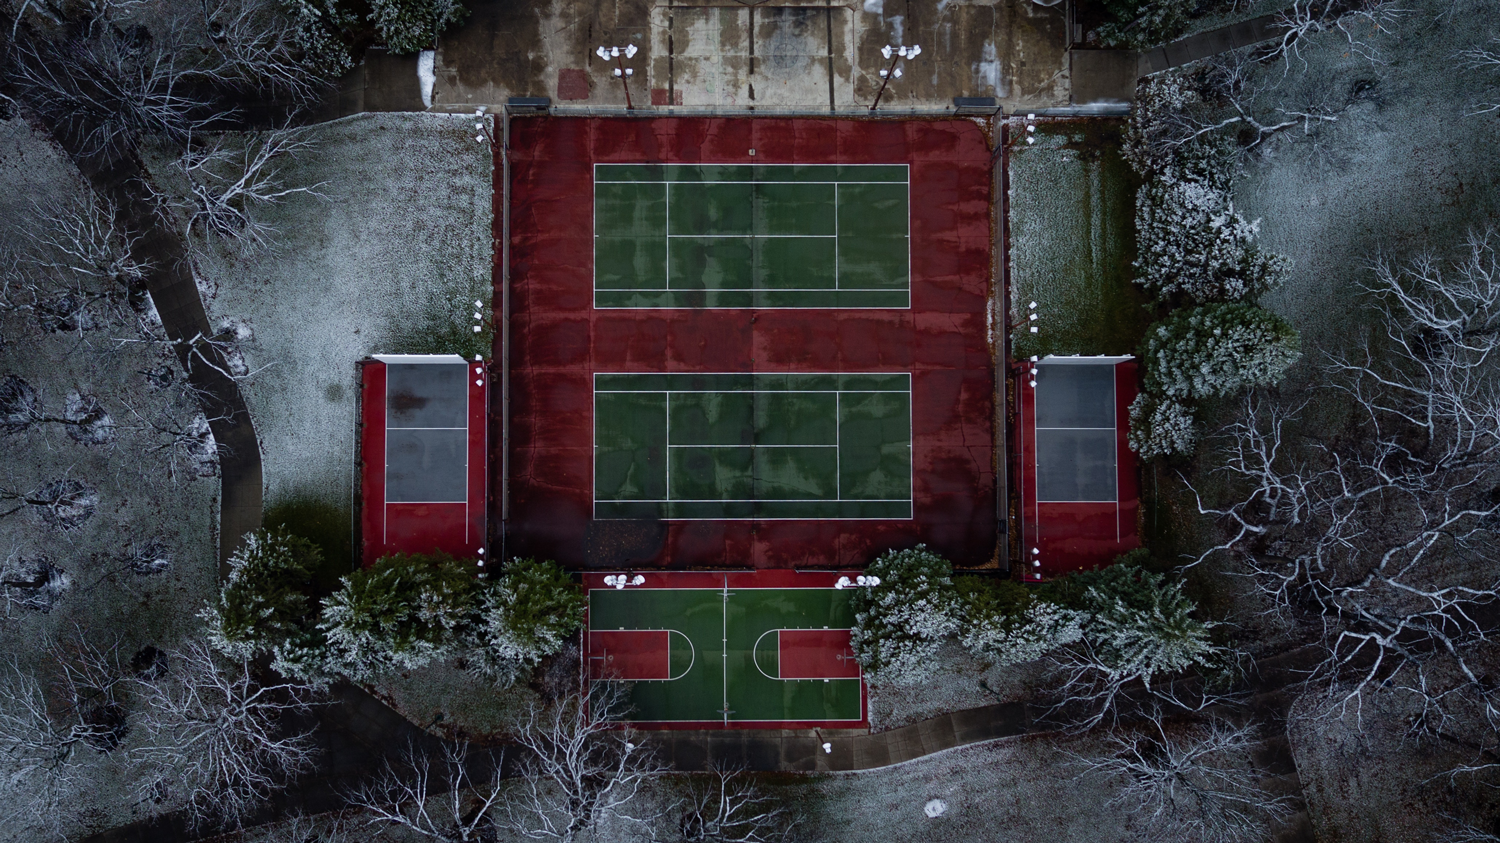 aerial-view-tennis-court-frost-will-dehoogh-unsplash.png